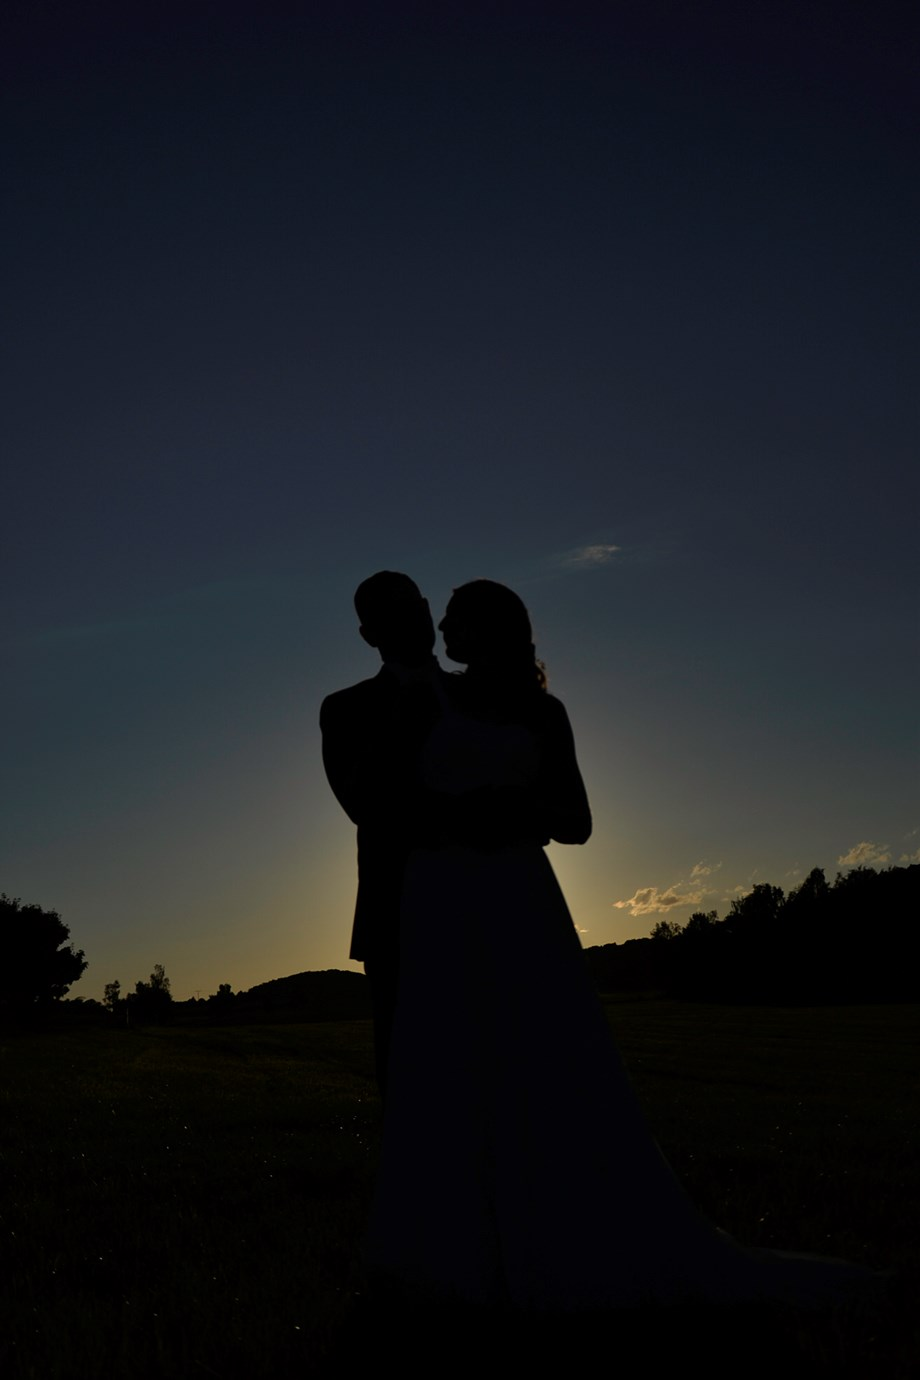 Hochzeitsfotograf: Fotoshooting Wedding Sunset - TC Photography by Travino Cordova